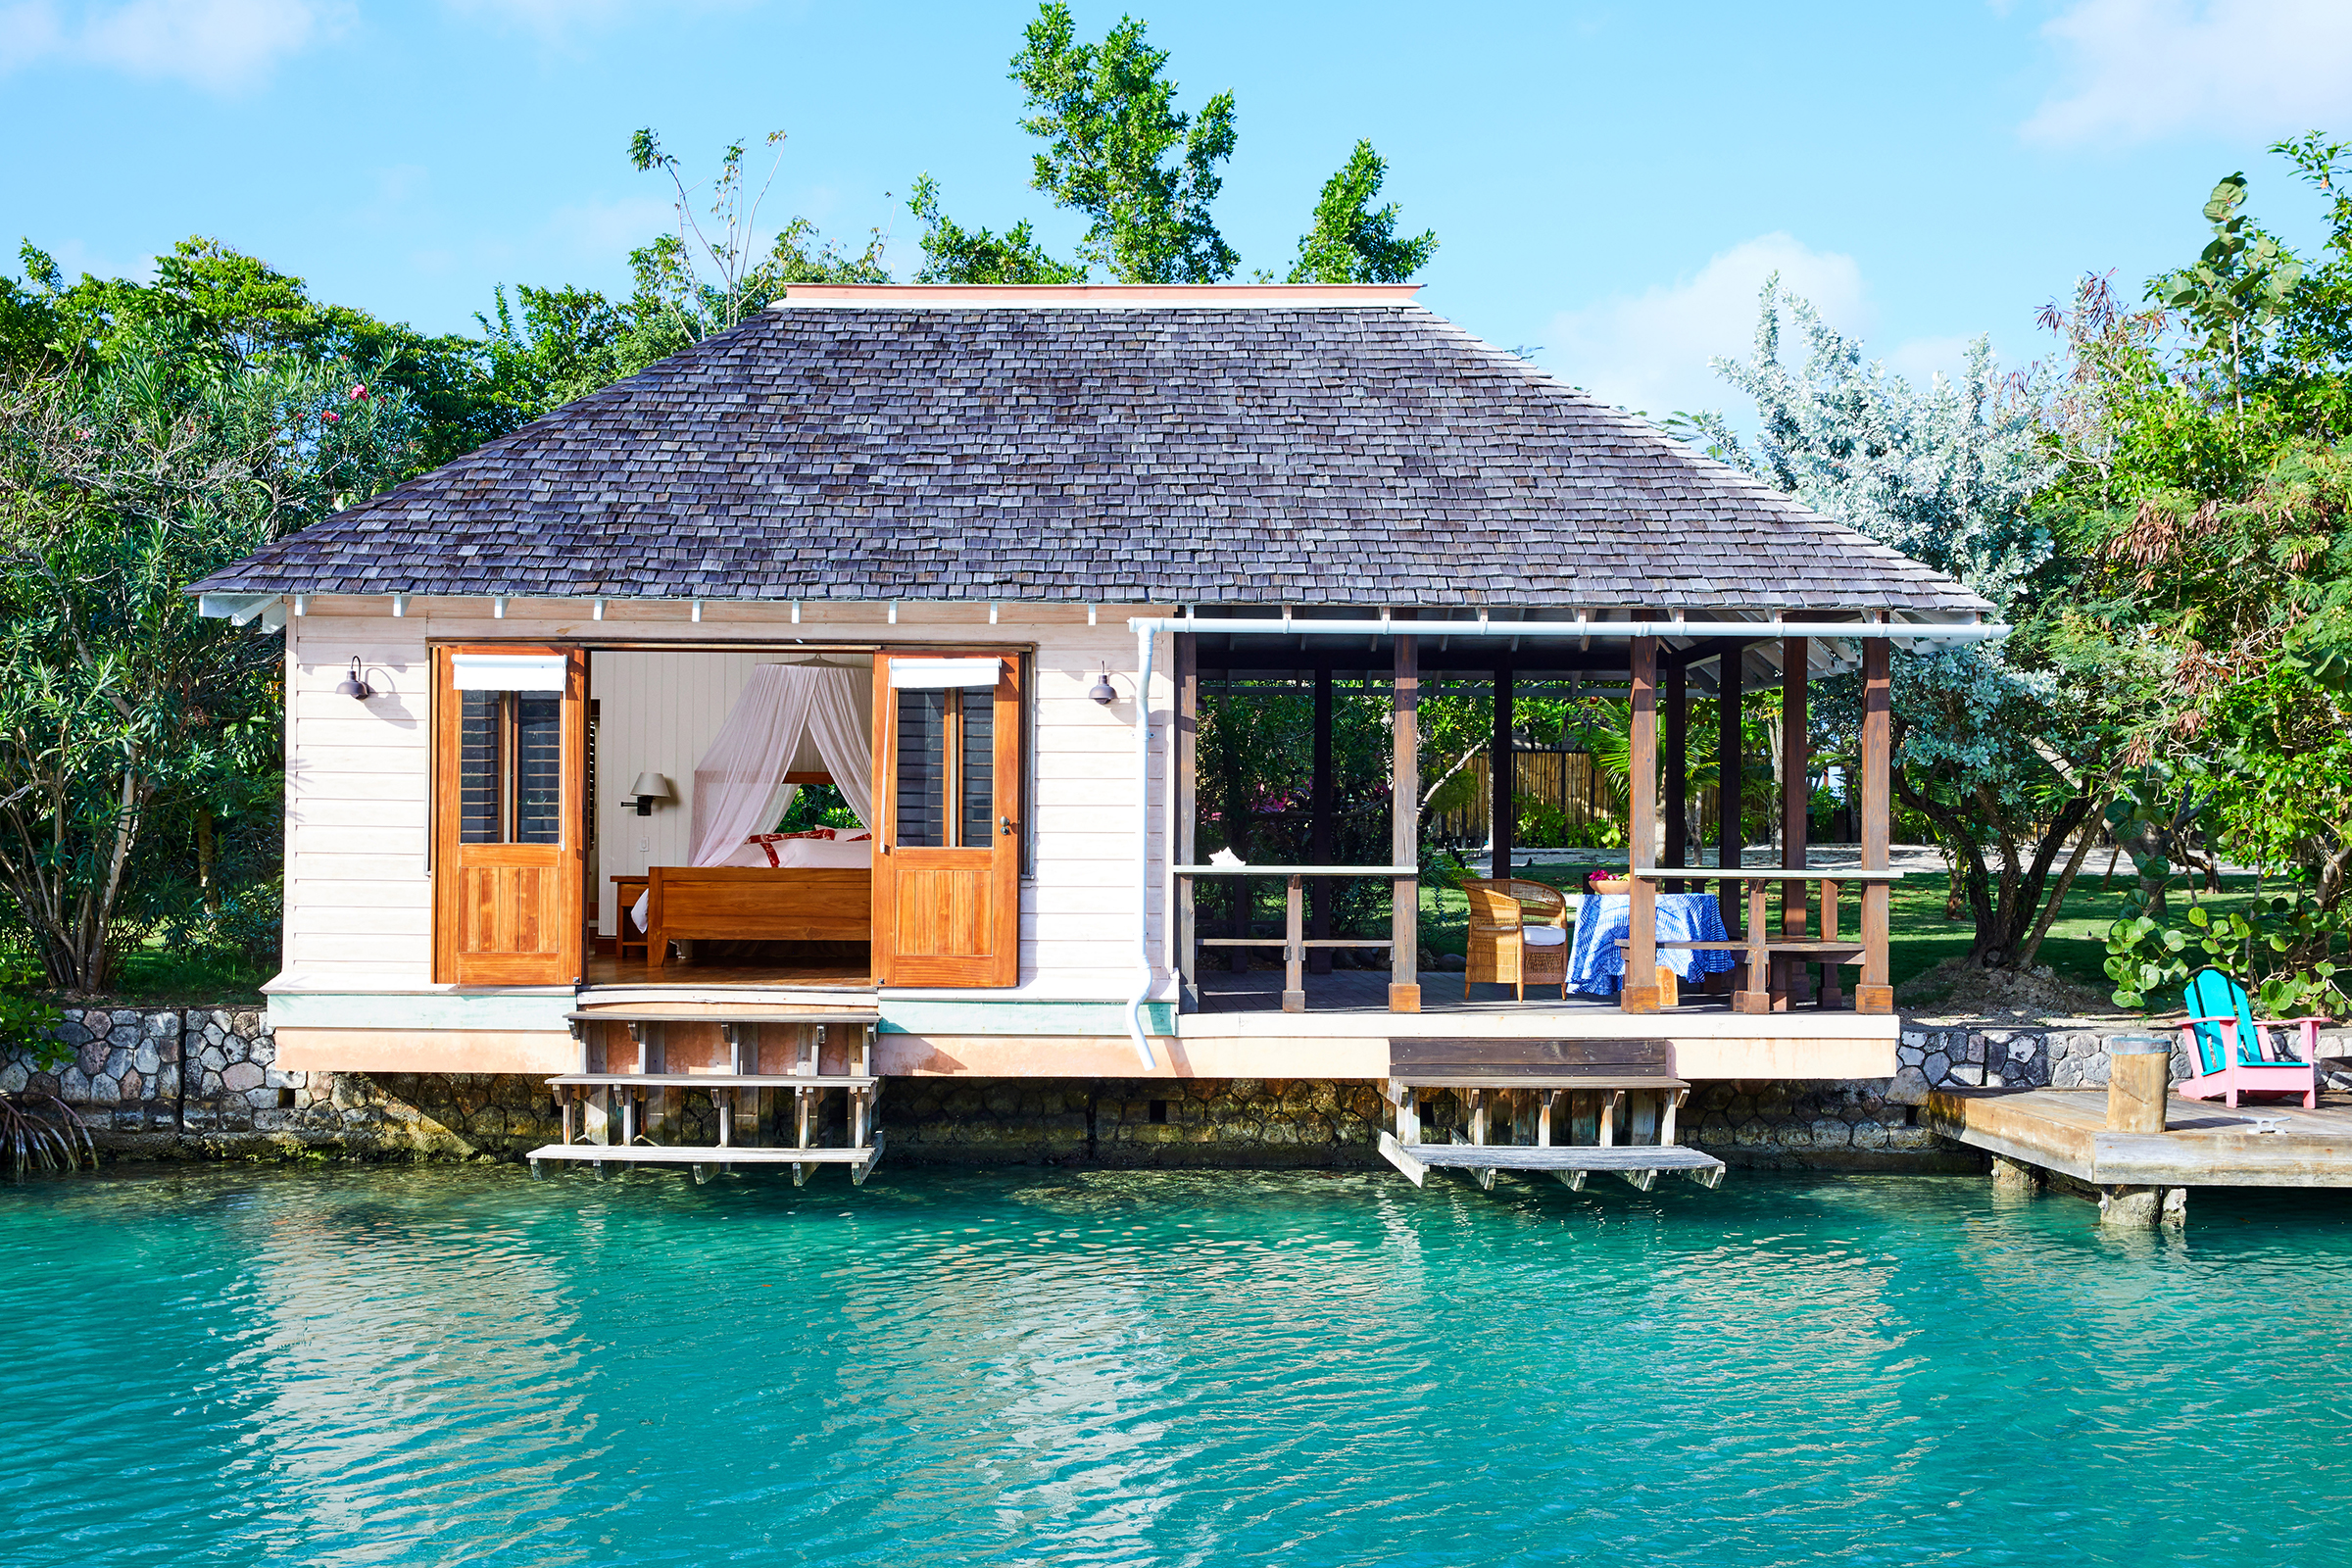 The lagoon cottage that sits on the water at the Goldeneye Resort.